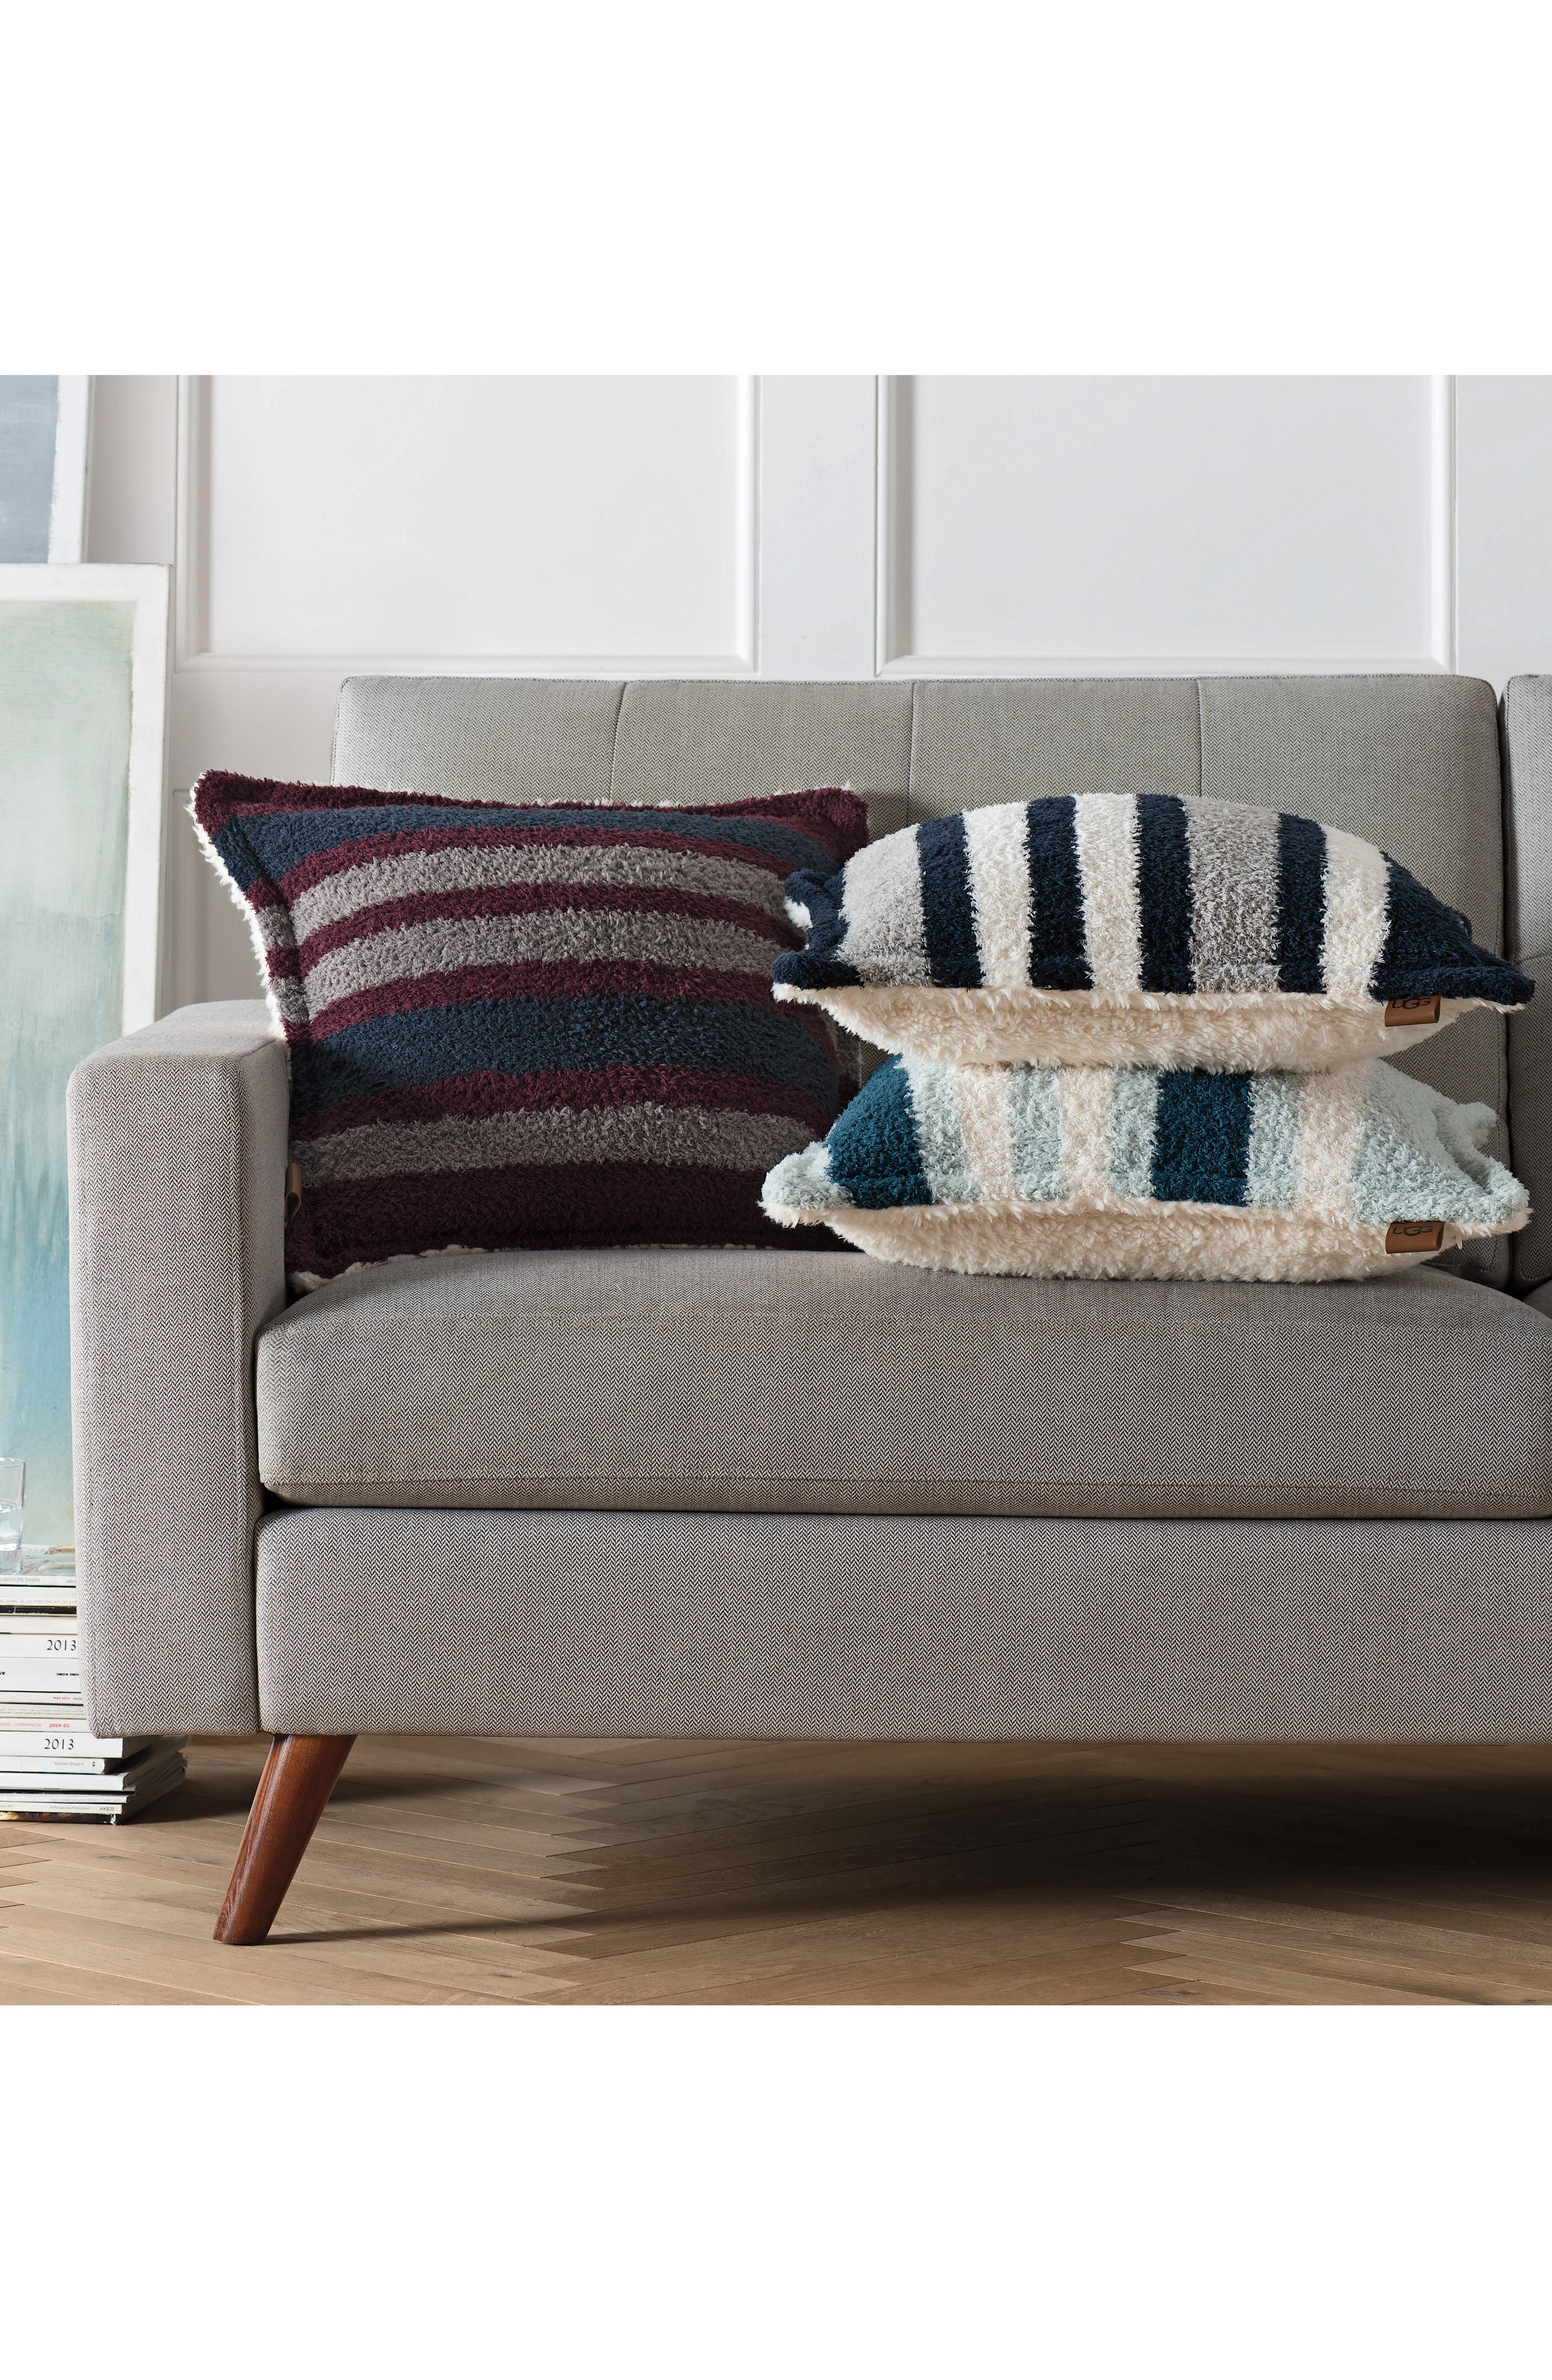 Ana Stripe Accent Pillow,                             Alternate thumbnail 2, color,                             NAVY MULTI